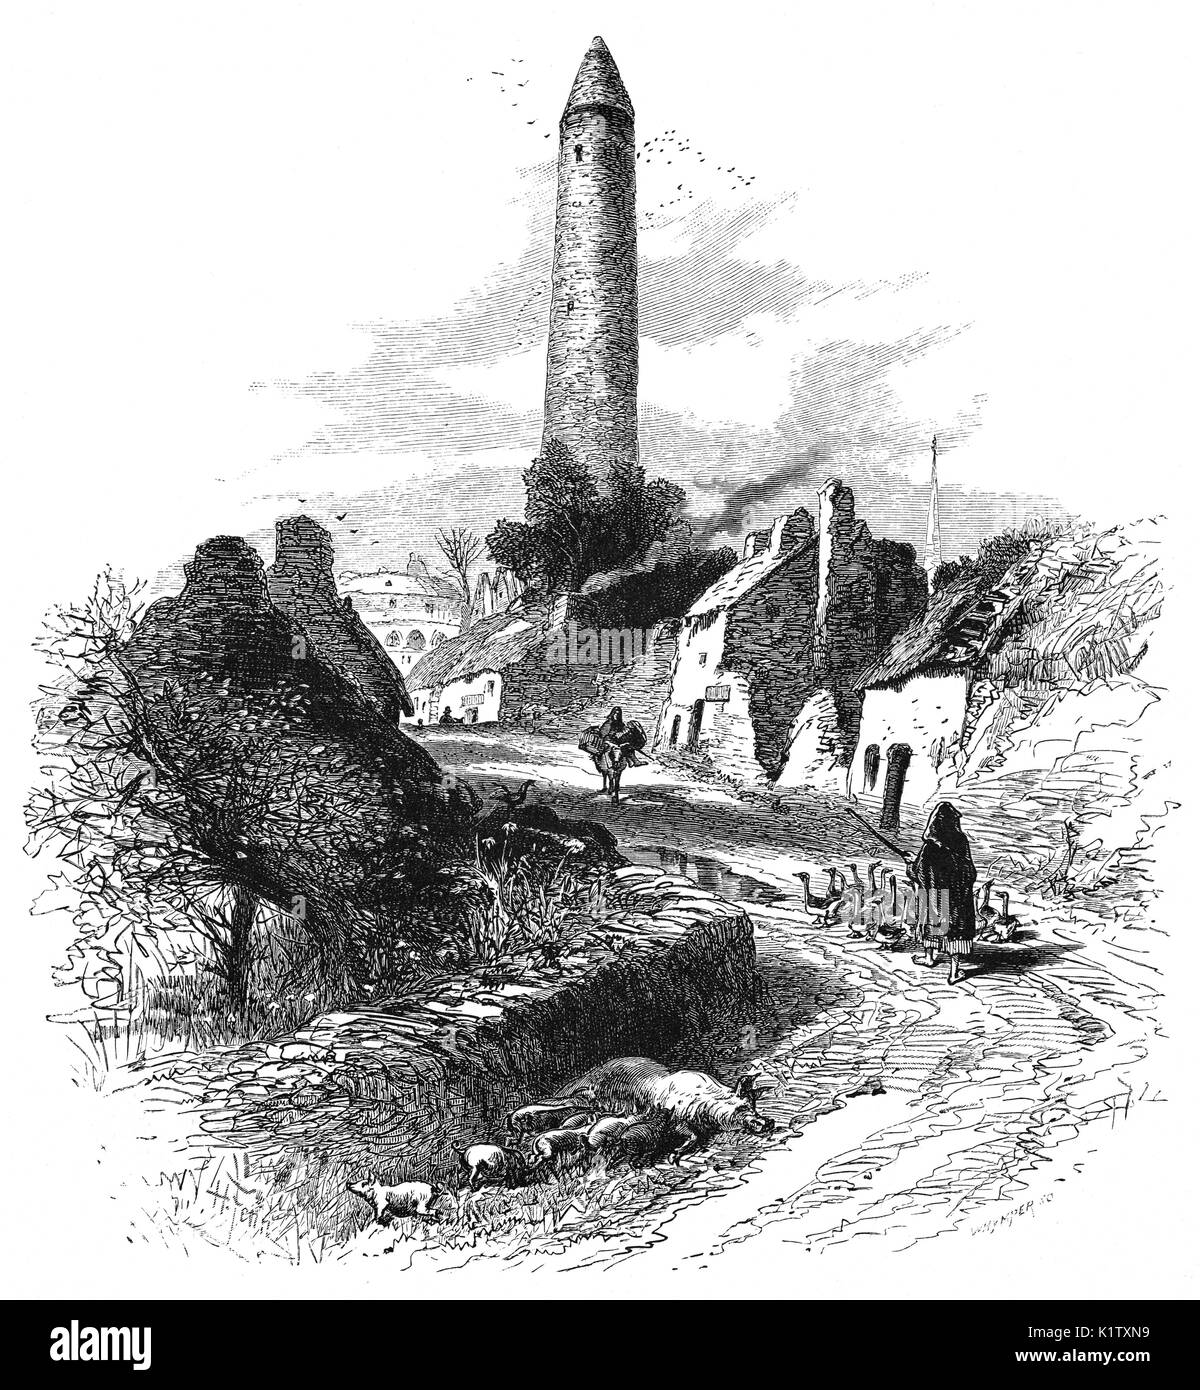 1870: Village life below the Round Tower built in the 5th Century monastic site instigated by St Patrick in Kilalla, County Mayo, Ireland - Stock Image